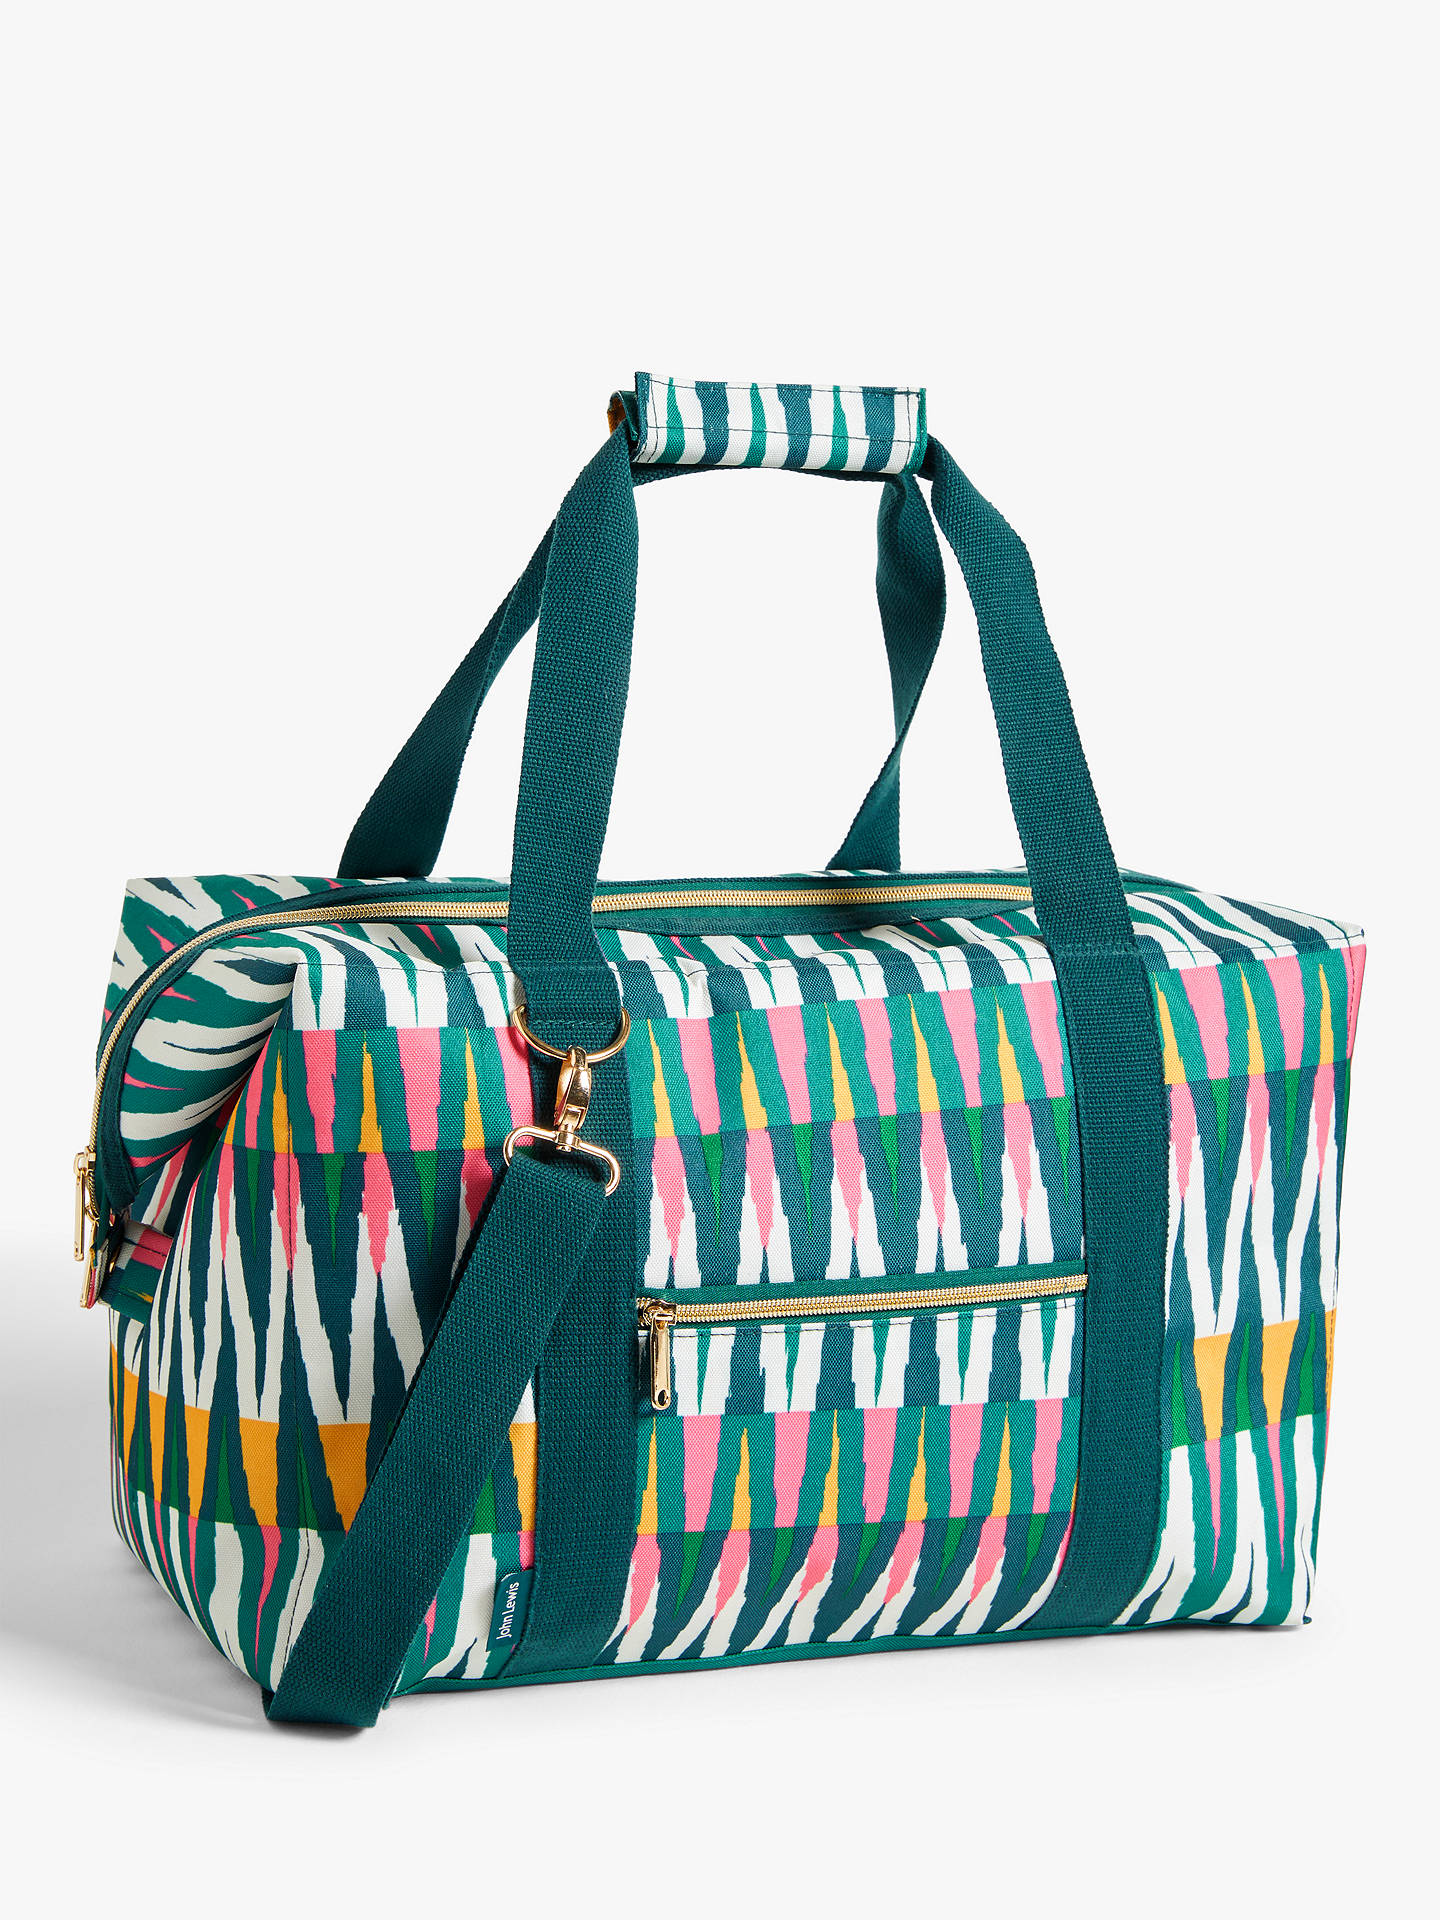 Buy John Lewis & Partners Fusion Extra Large Picnic Cooler Bag, 30L, Green/Multi Online at johnlewis.com